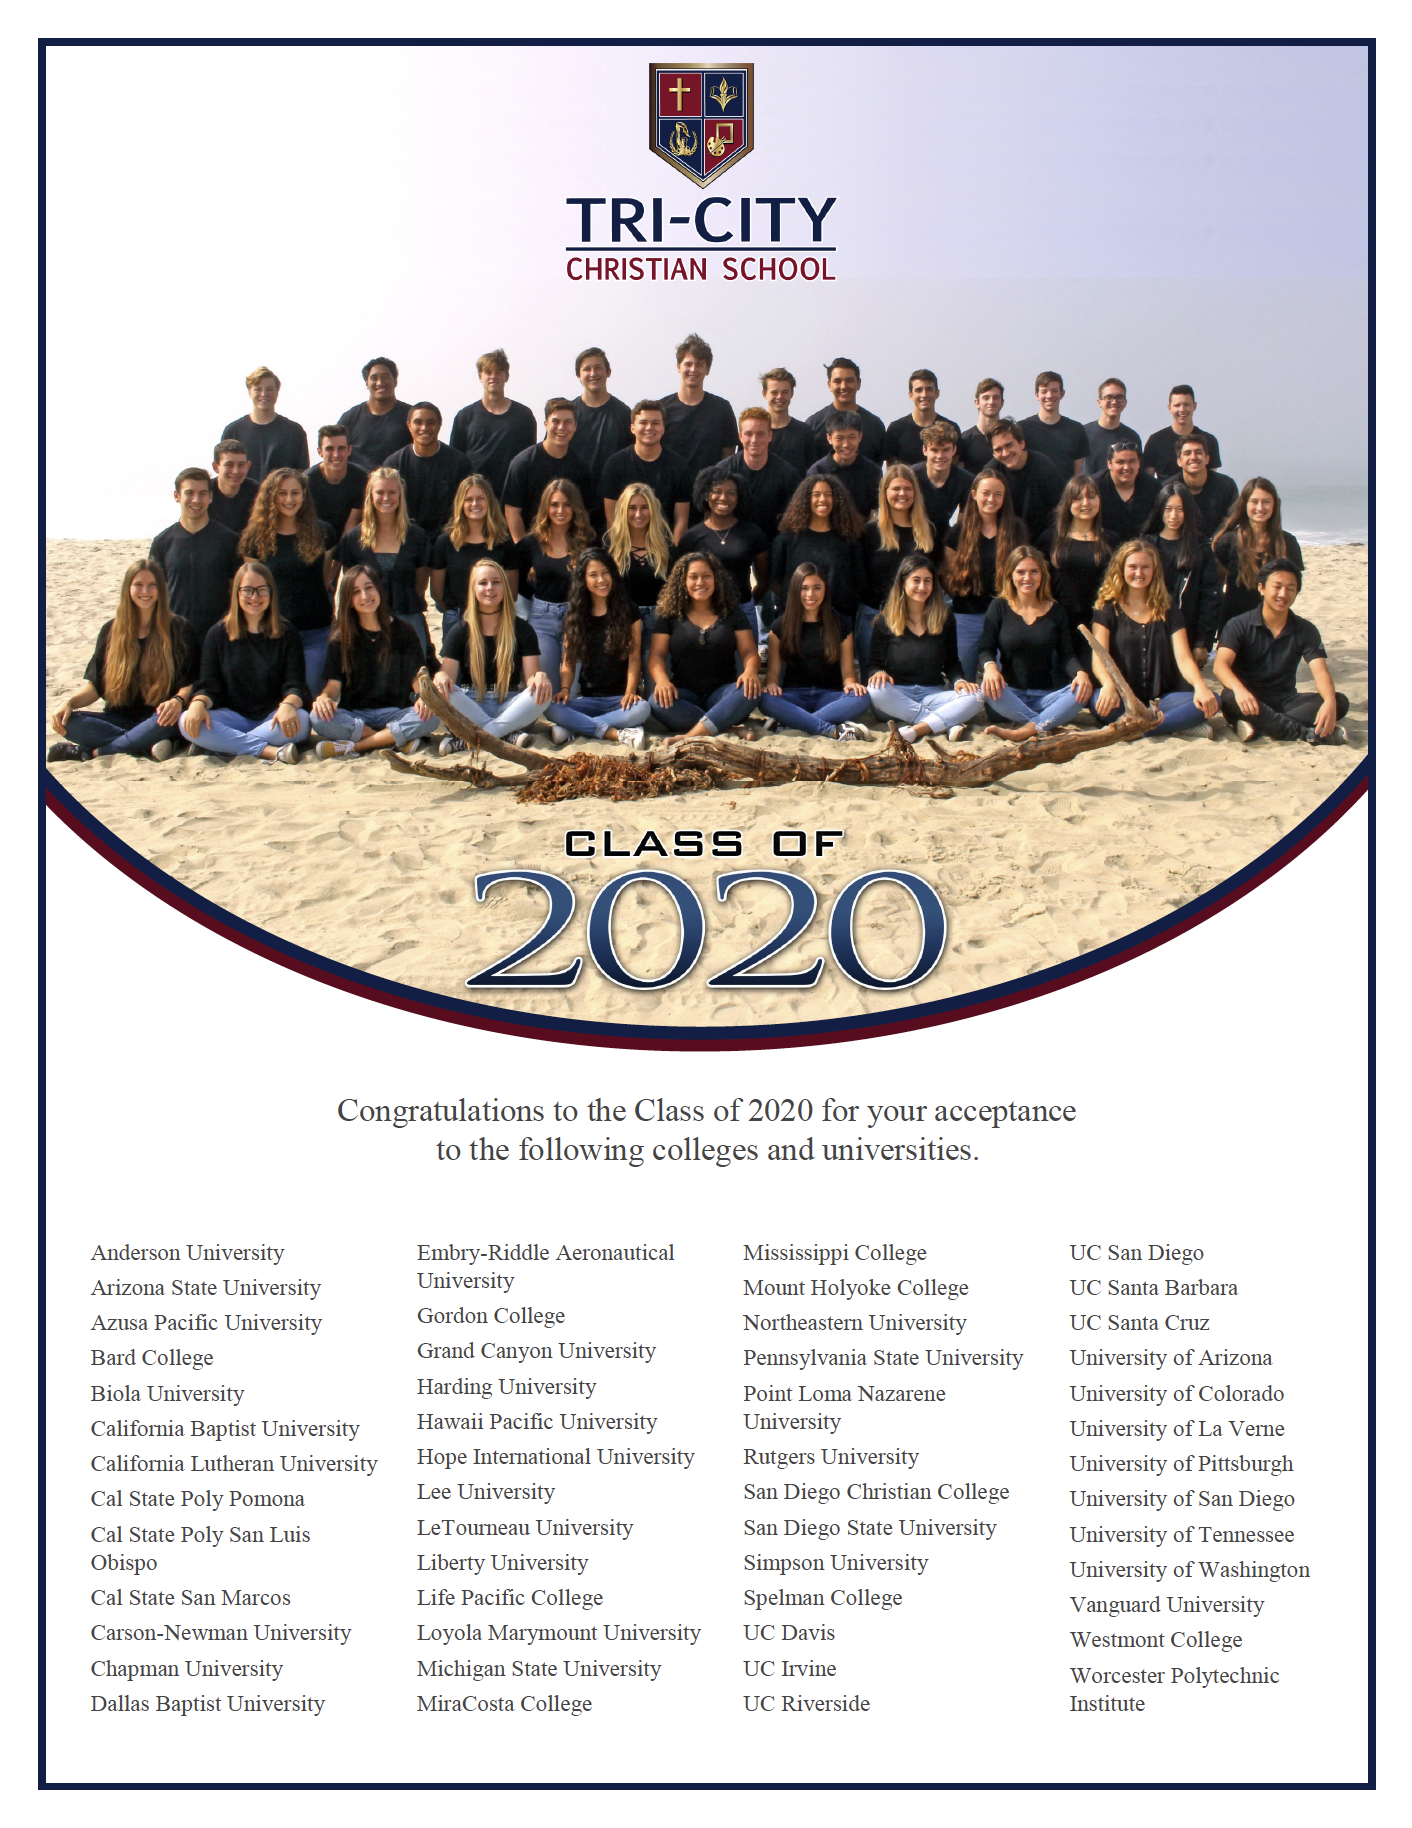 TCCS Class of 2020 College Acceptances